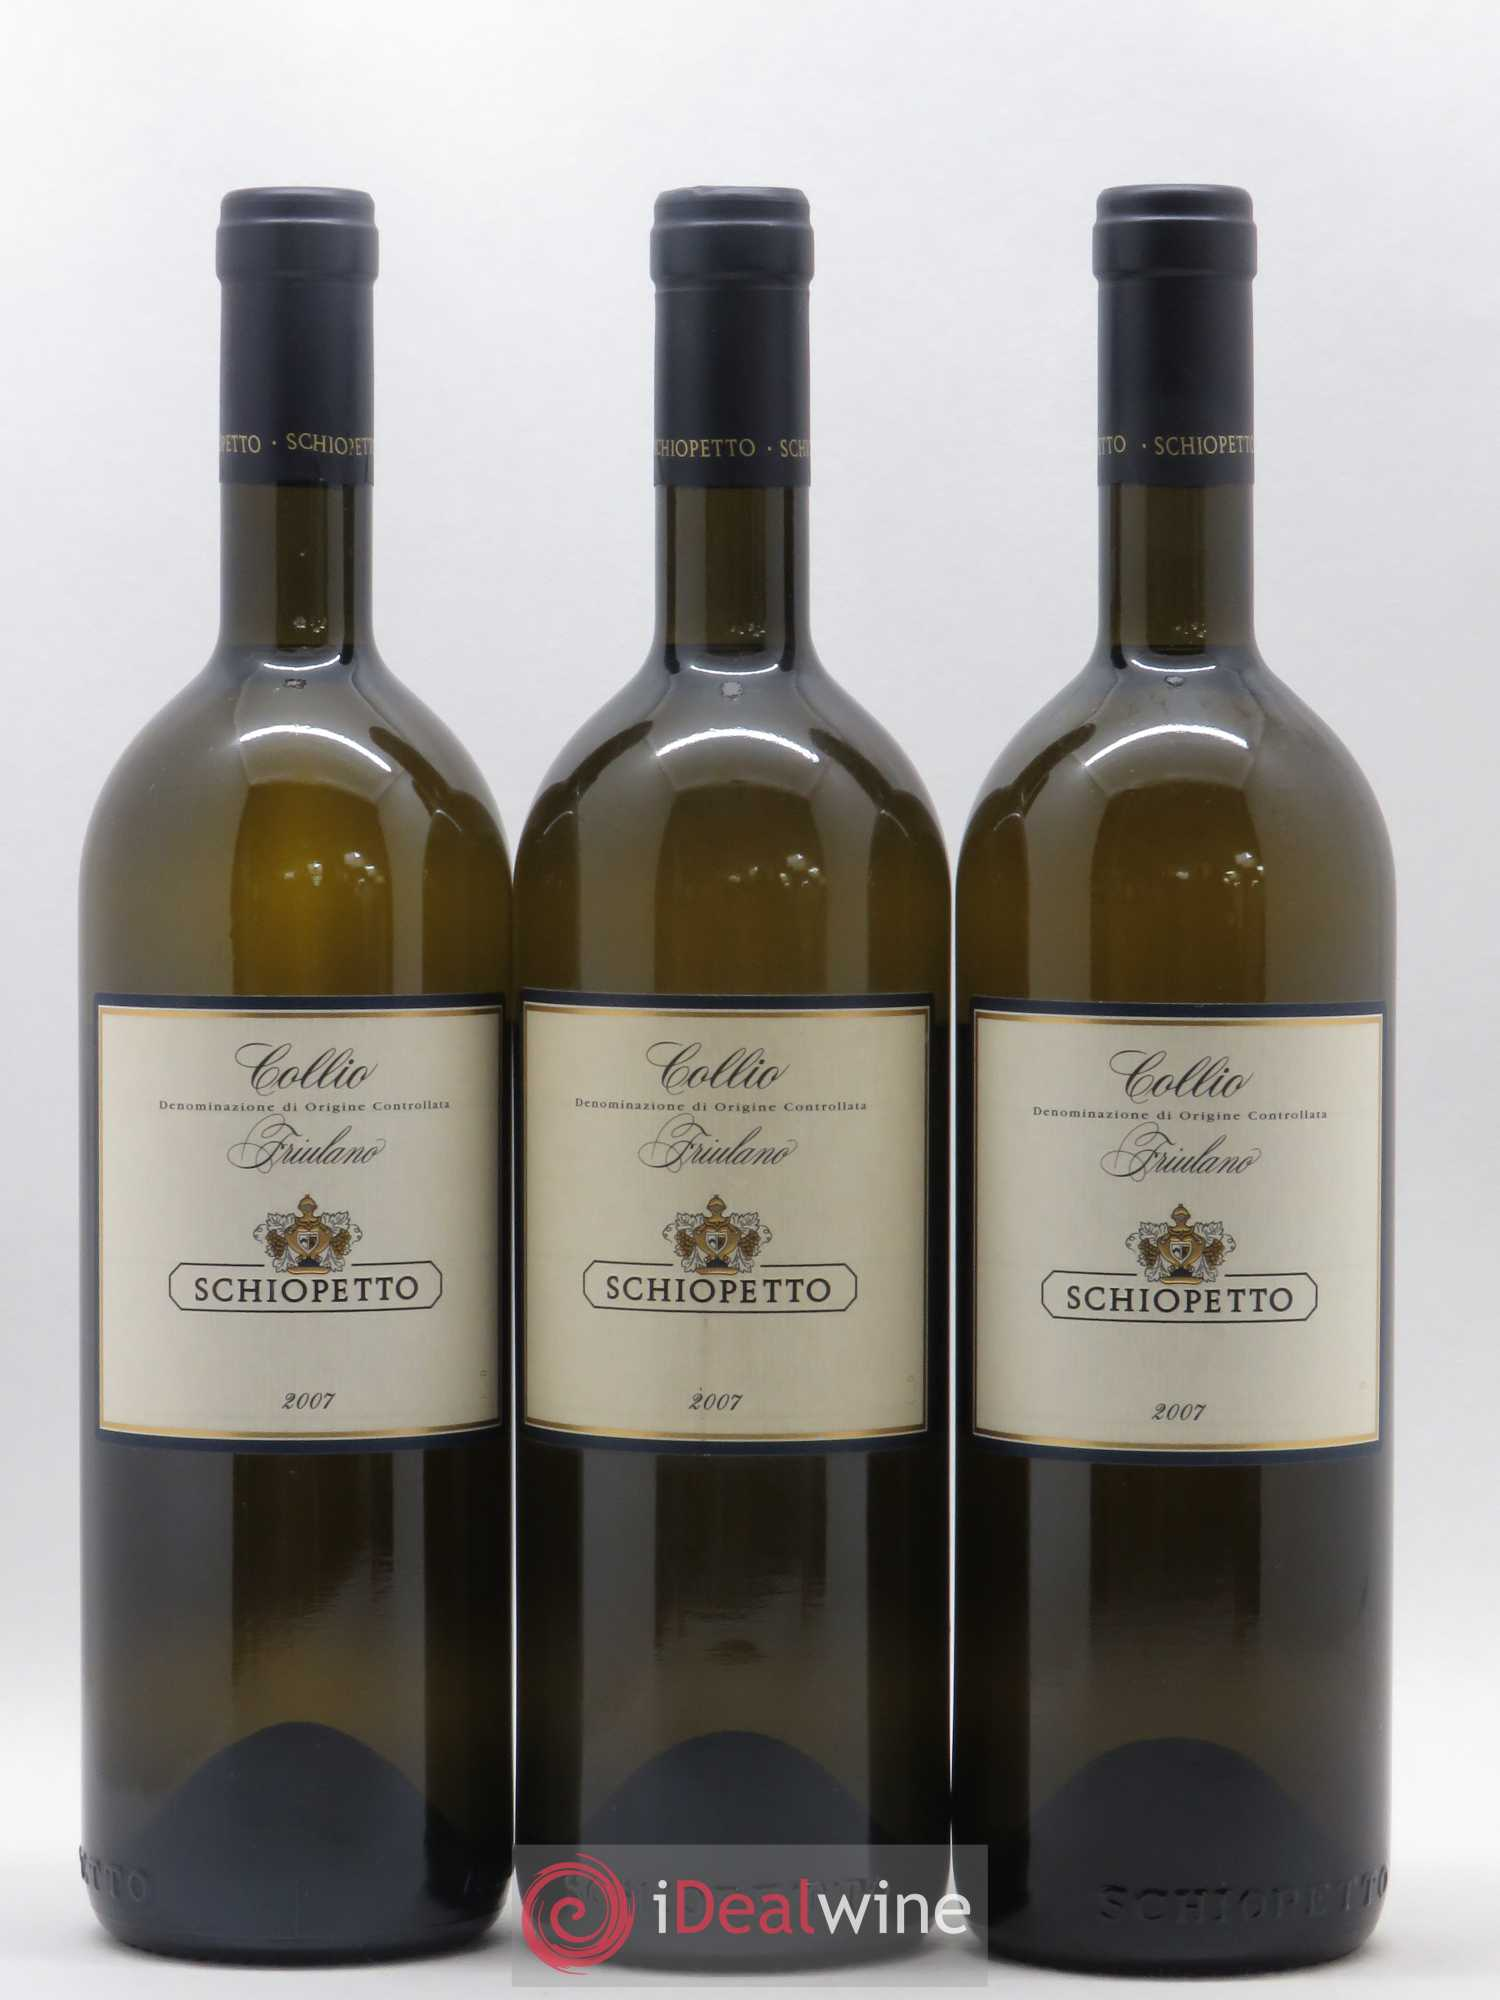 Italie Friulano Collio Schiopetto (no reserve) 2007 - Lot of 3 Bottles